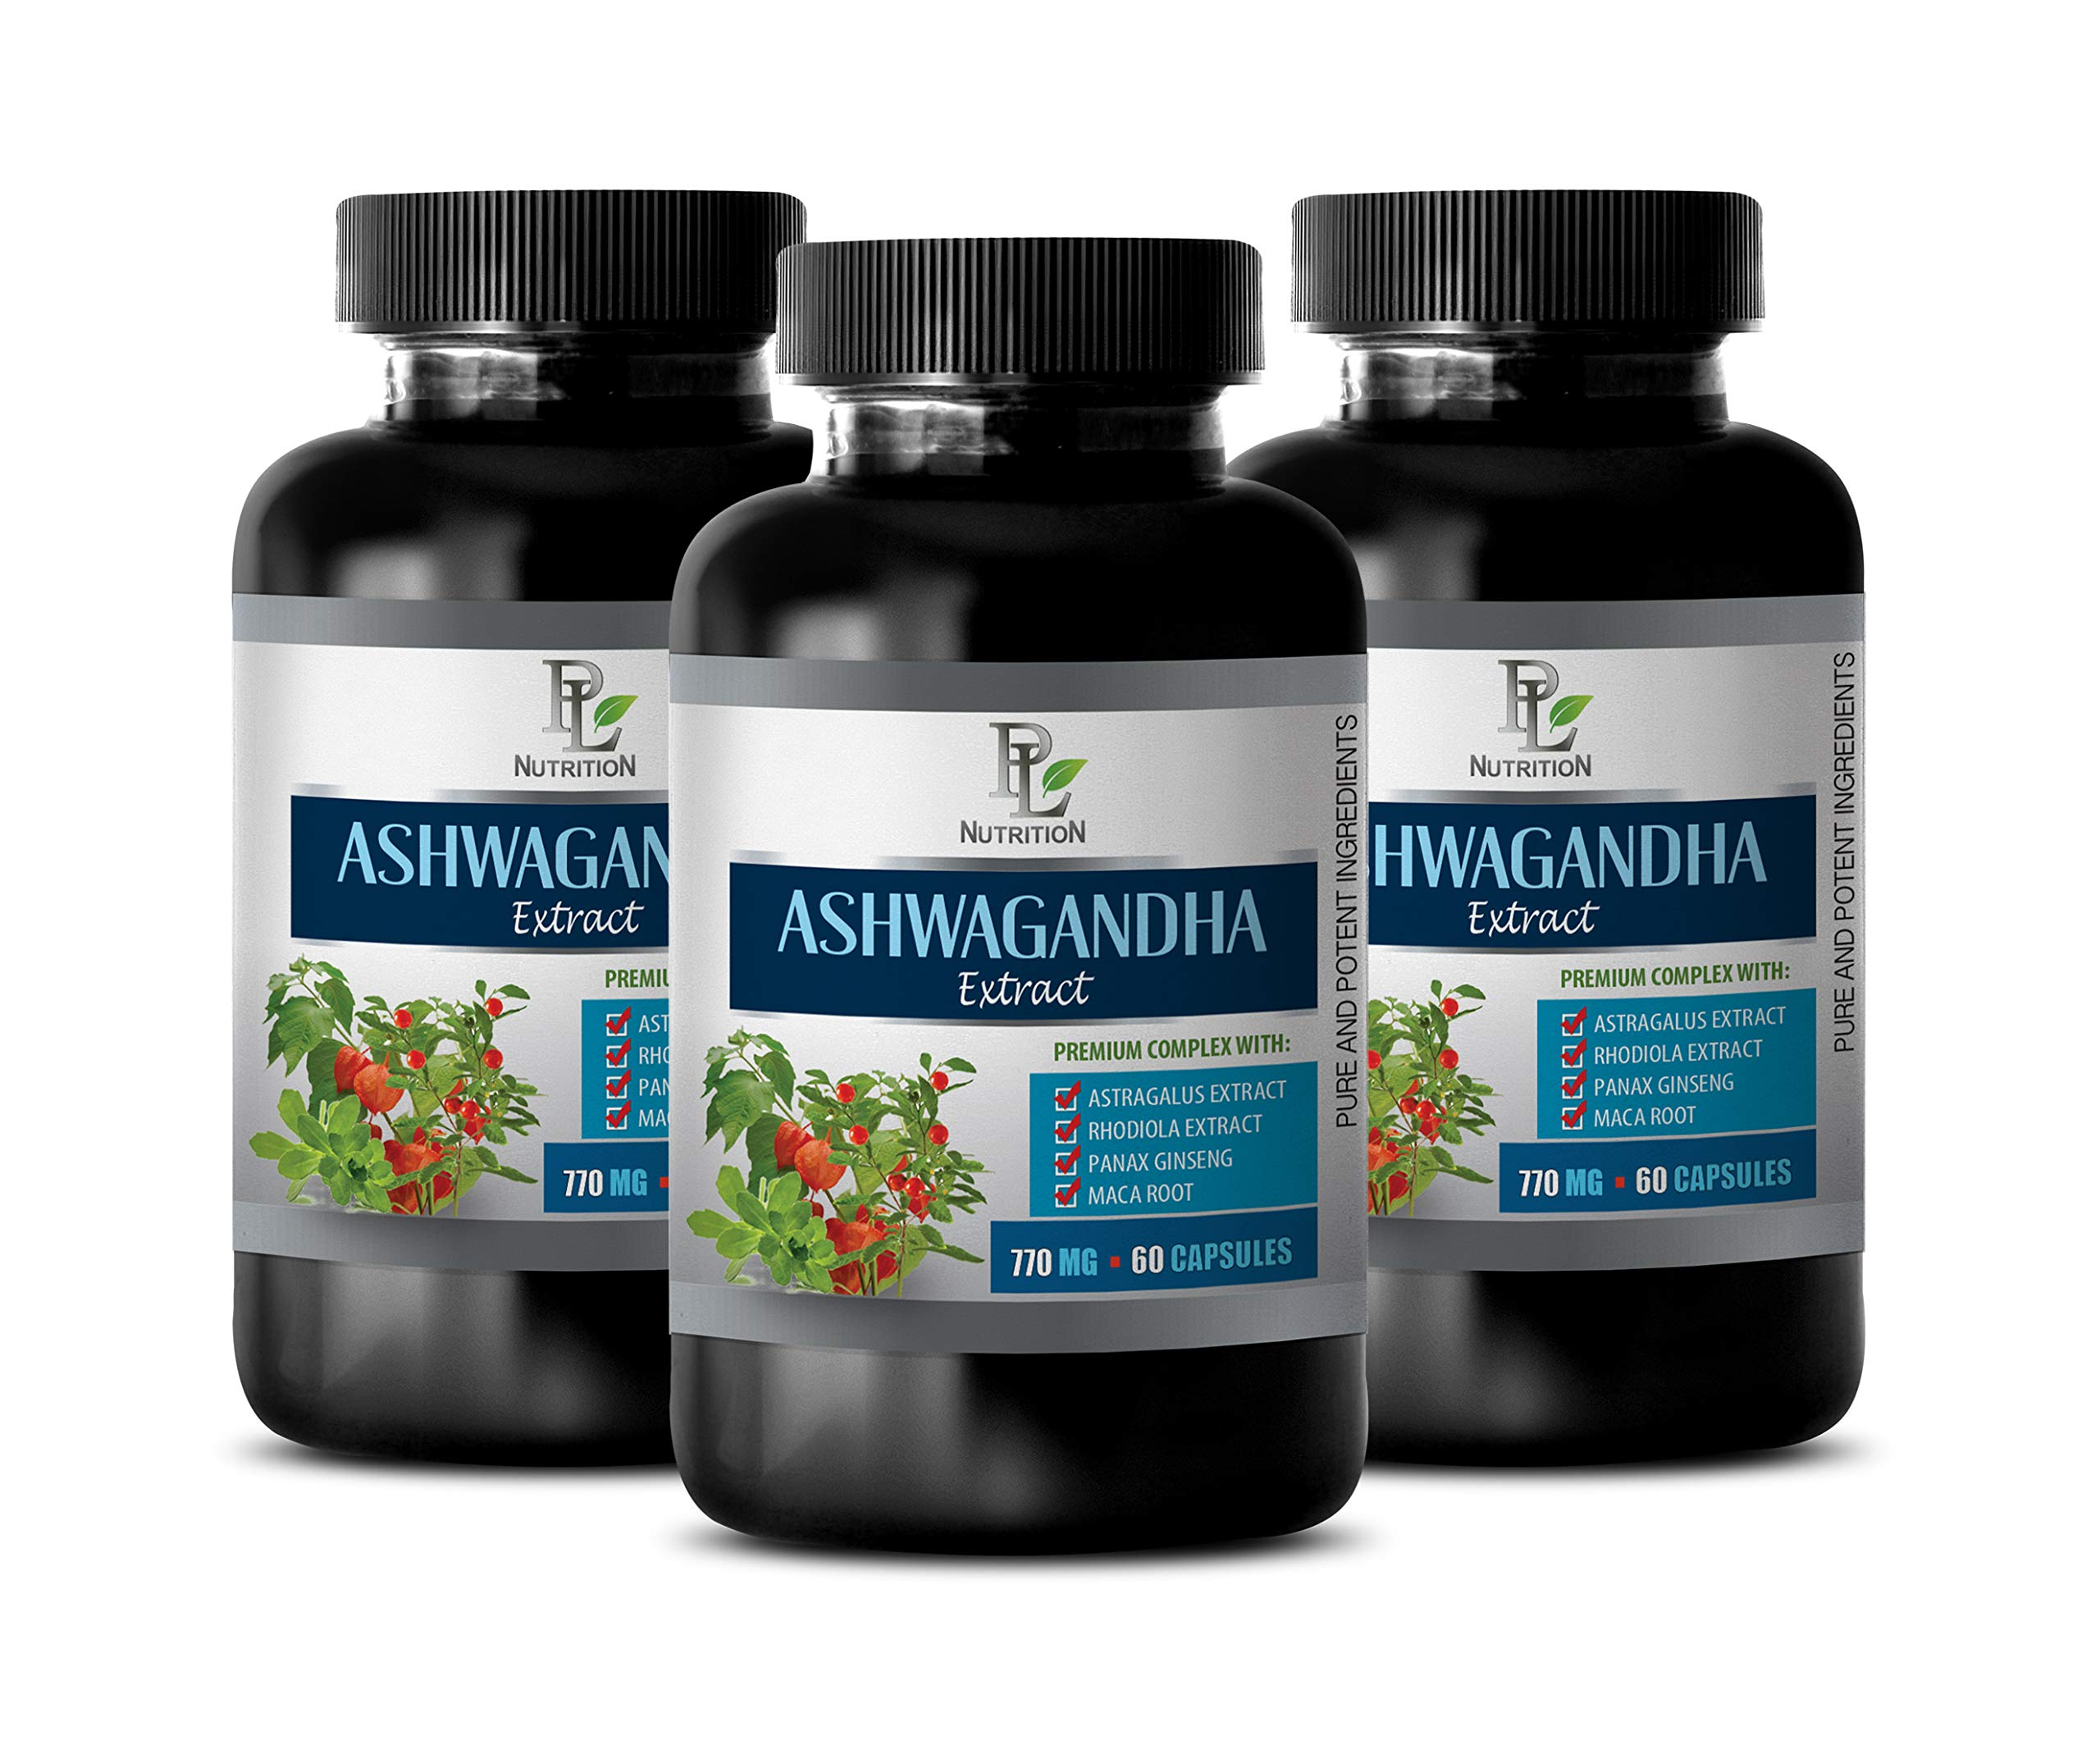 Brain and Memory Supplements - ASHWAGANDHA Extract 770MG - Premium Complex - eleutherococcus senticosus Extract - 3 Bottles 180 Vegetable Capsules